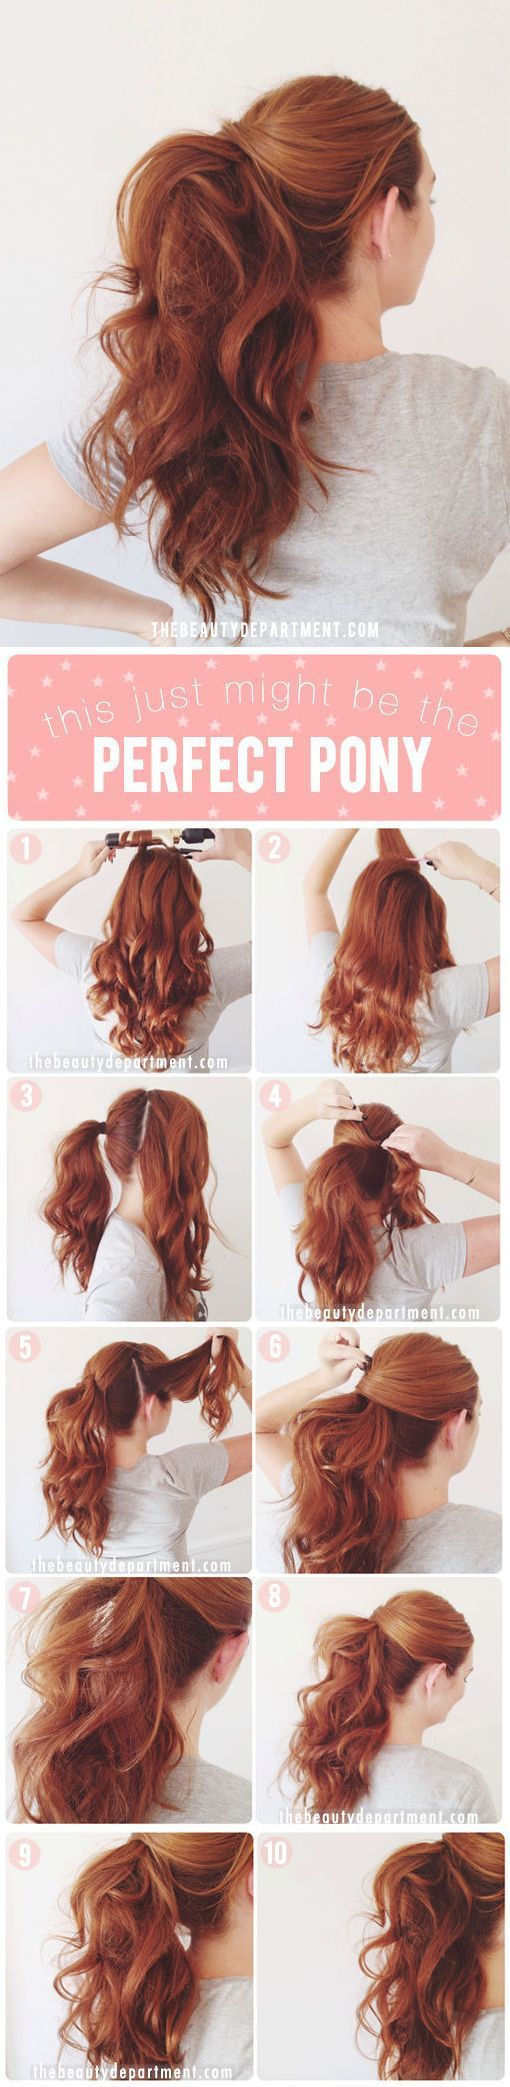 25 Best Ideas About Easy Down Hairstyles On Pinterest Down